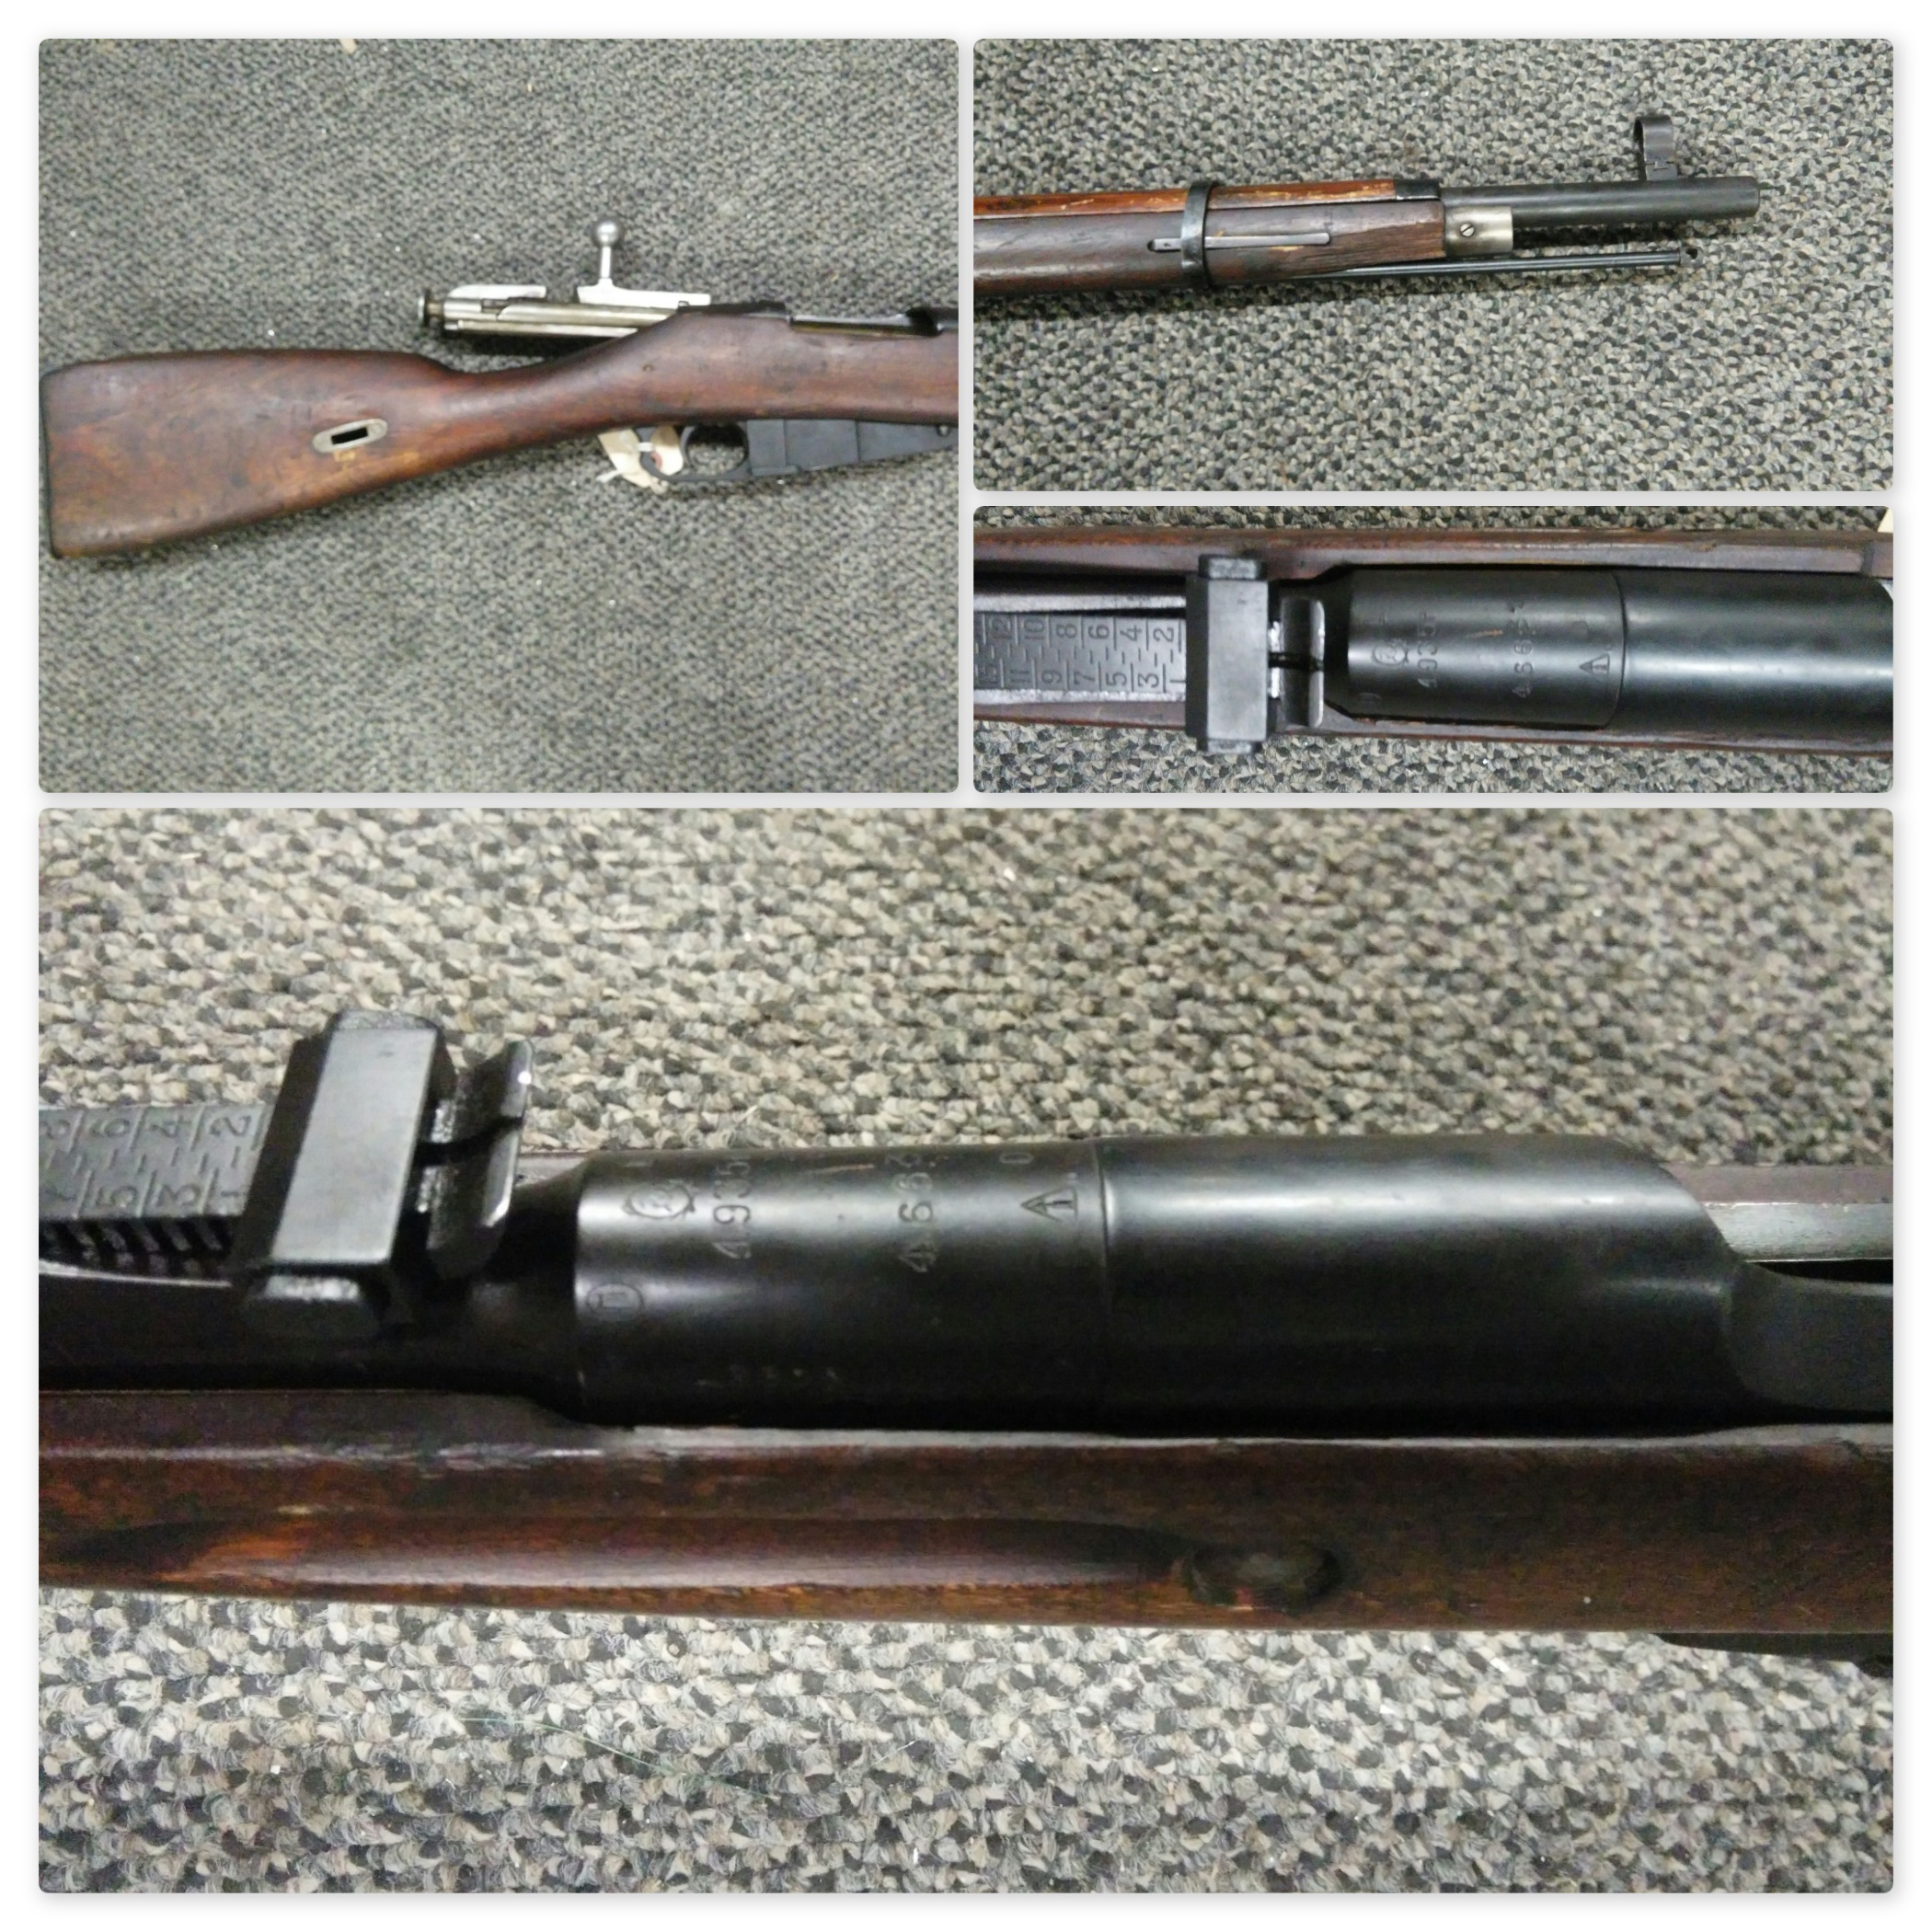 FINNISH CAPTURE Russian M91/30 1935 Izhvesk